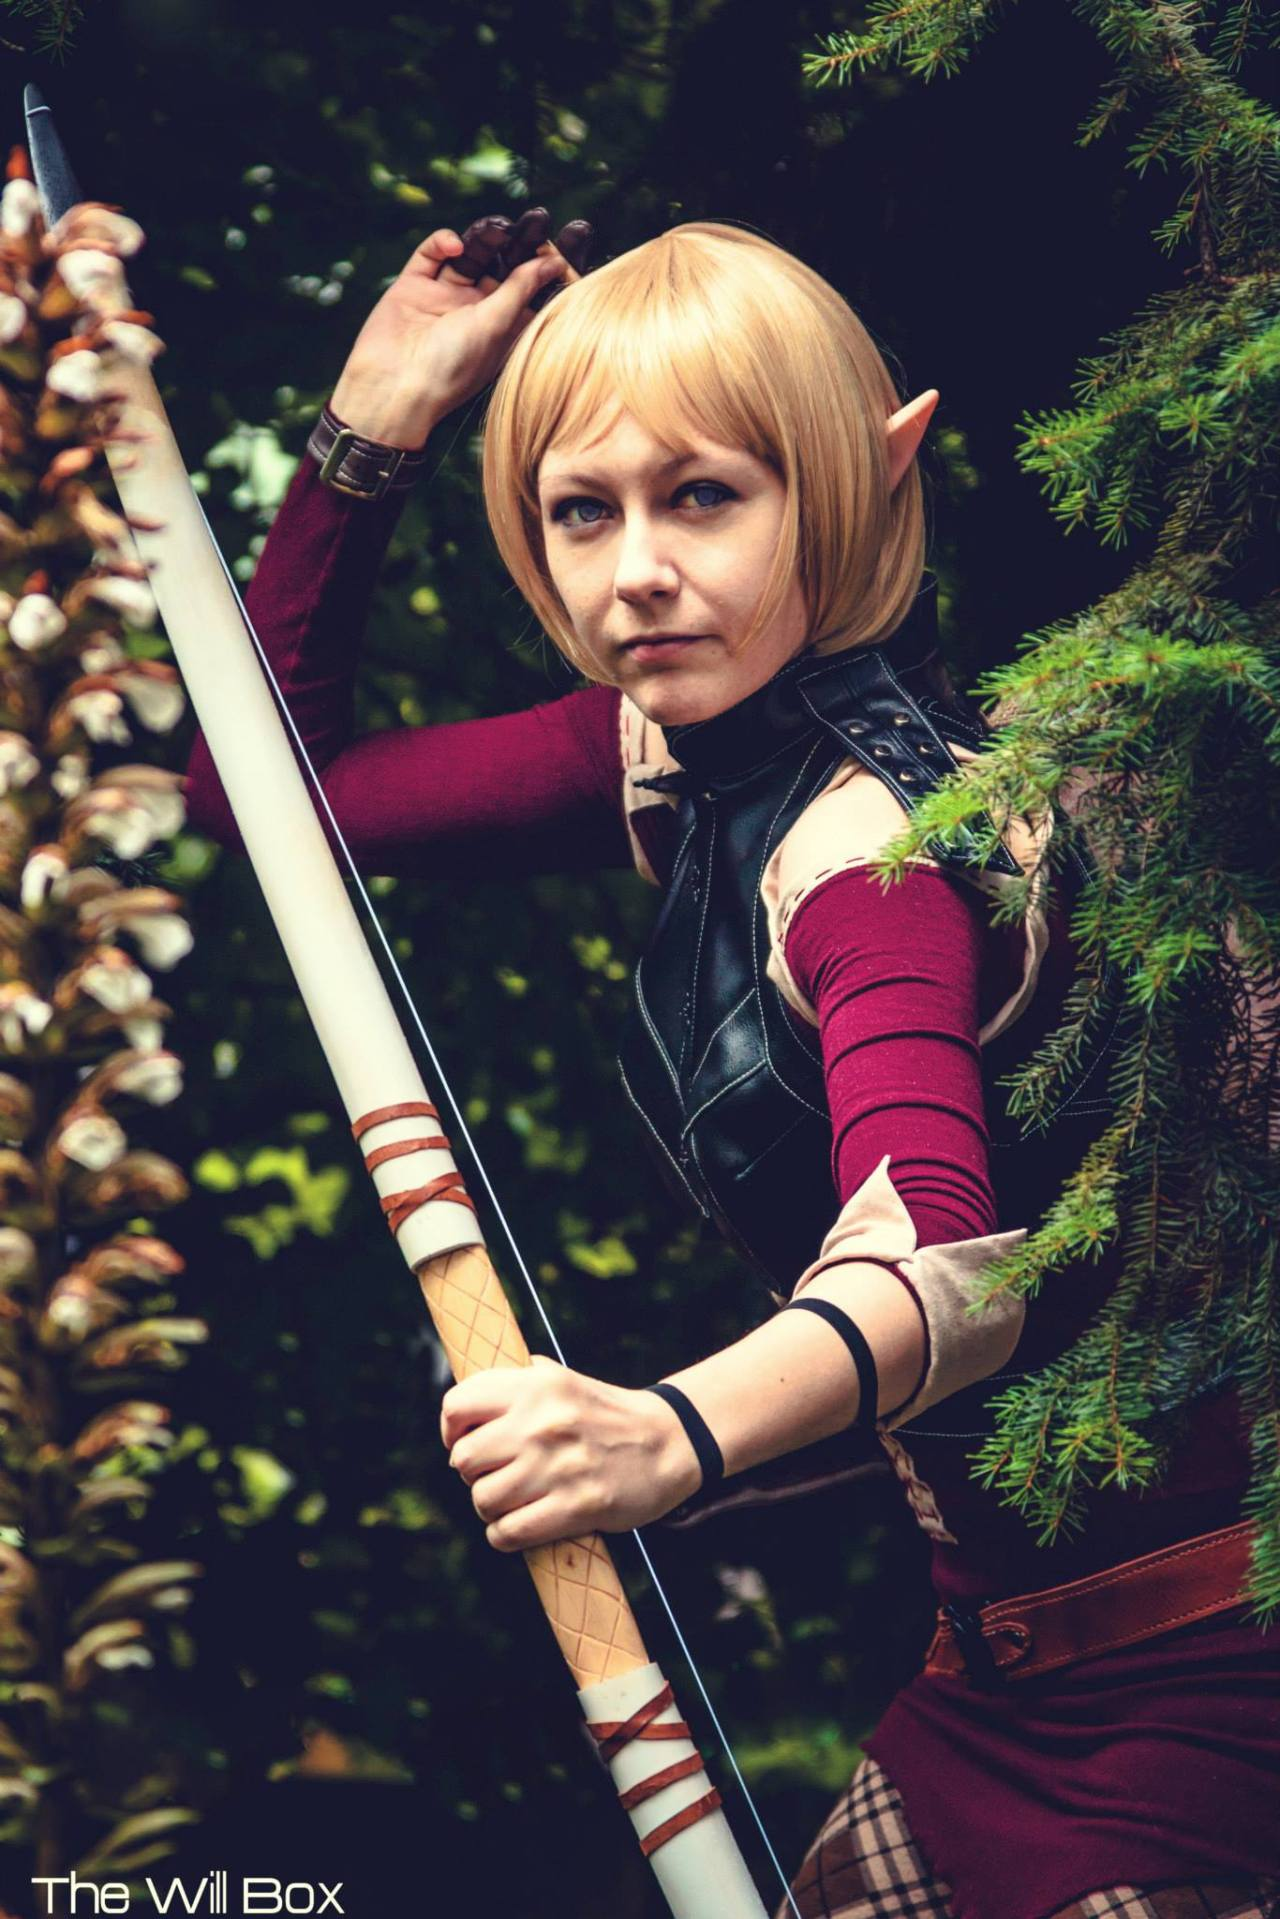 emmabellish:  Lovely photo of Sera by thewillbox at PAX Prime 2014! Really stoked to shoot with him again in the future!